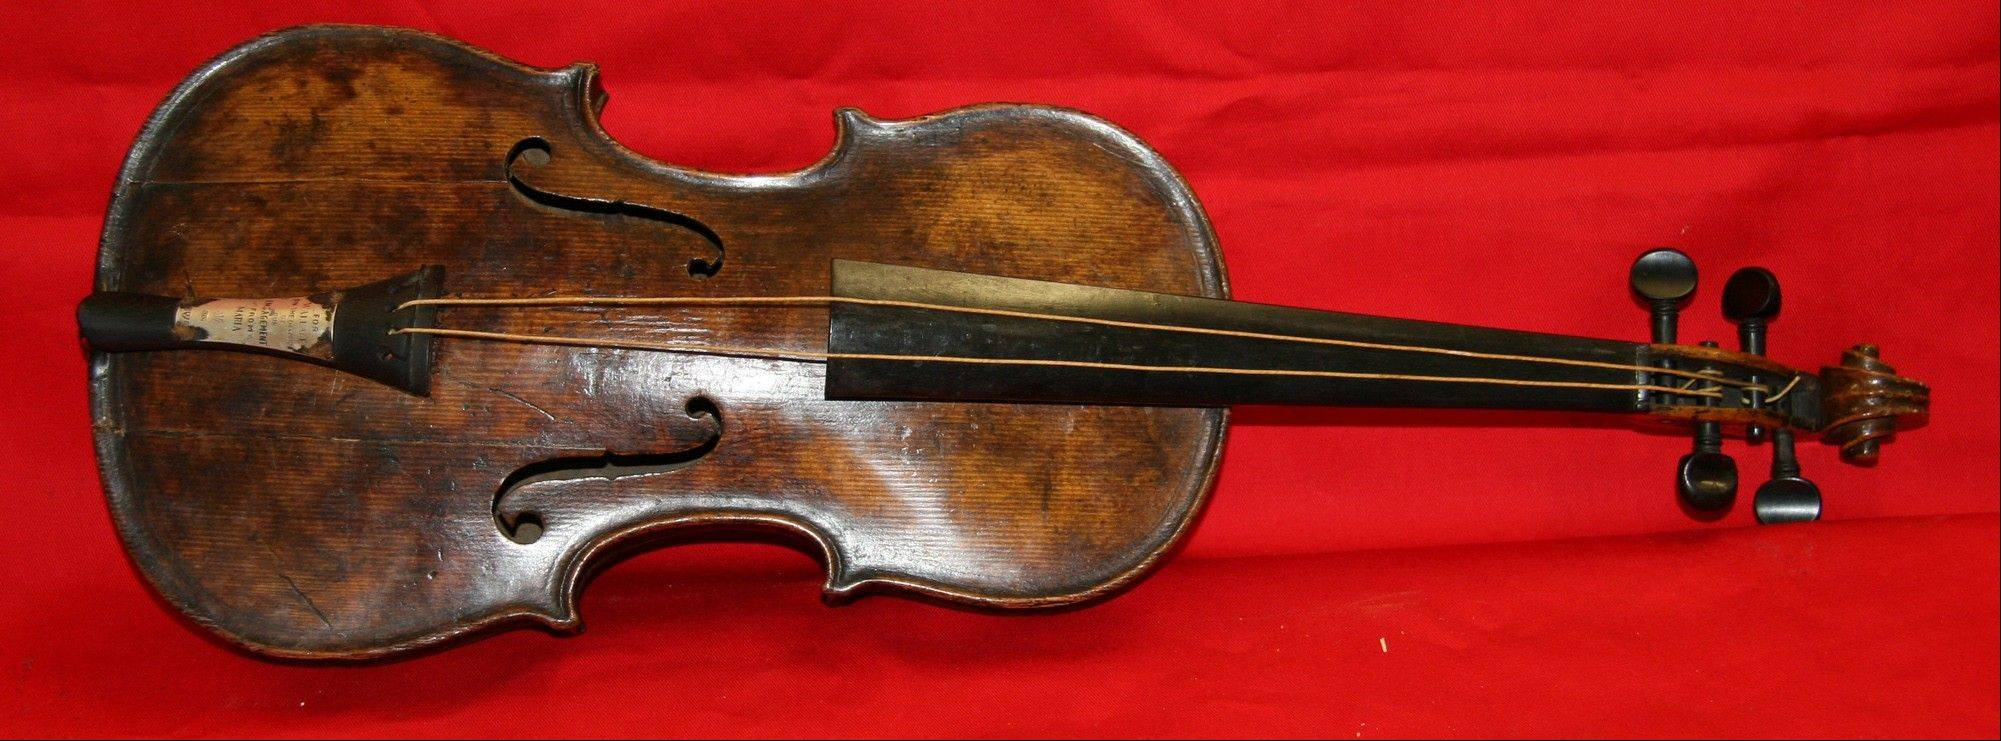 Auctioneers Henry Aldridge & Son say an instrument unearthed in 2006 has undergone rigorous testing and has proved to be the violin that was played by the bandmaster of the Titanic as the oceanliner sank. The auction house said has spent the past seven years and thousands of pounds determining the water-stained violin's origins, consulting numerous experts including government forensic scientists and Oxford University.